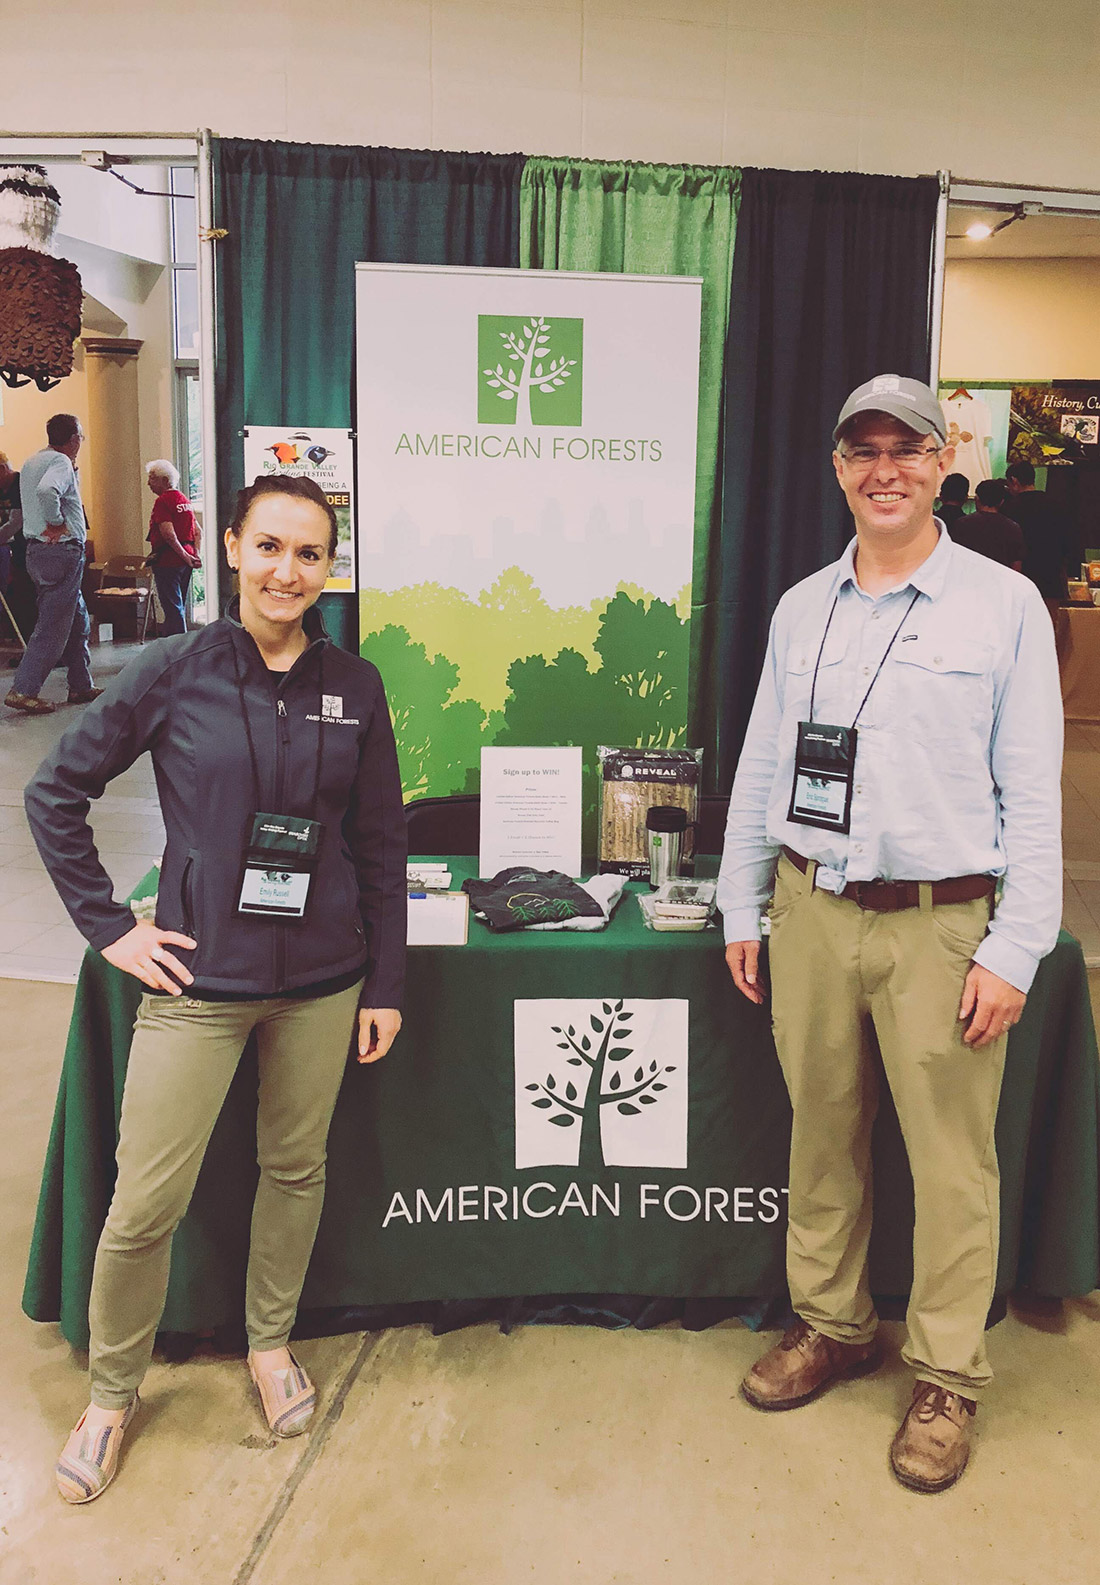 Emily Russell, director of major gifts, and Eric Sprague, director of American ReLeaf, were at the Rio Grande Valley Birding Festival in November, meeting with avian enthusiasts to discuss the crucial role of healthy forests among threatened bird species and promoting American Forests' decades of work in this region.